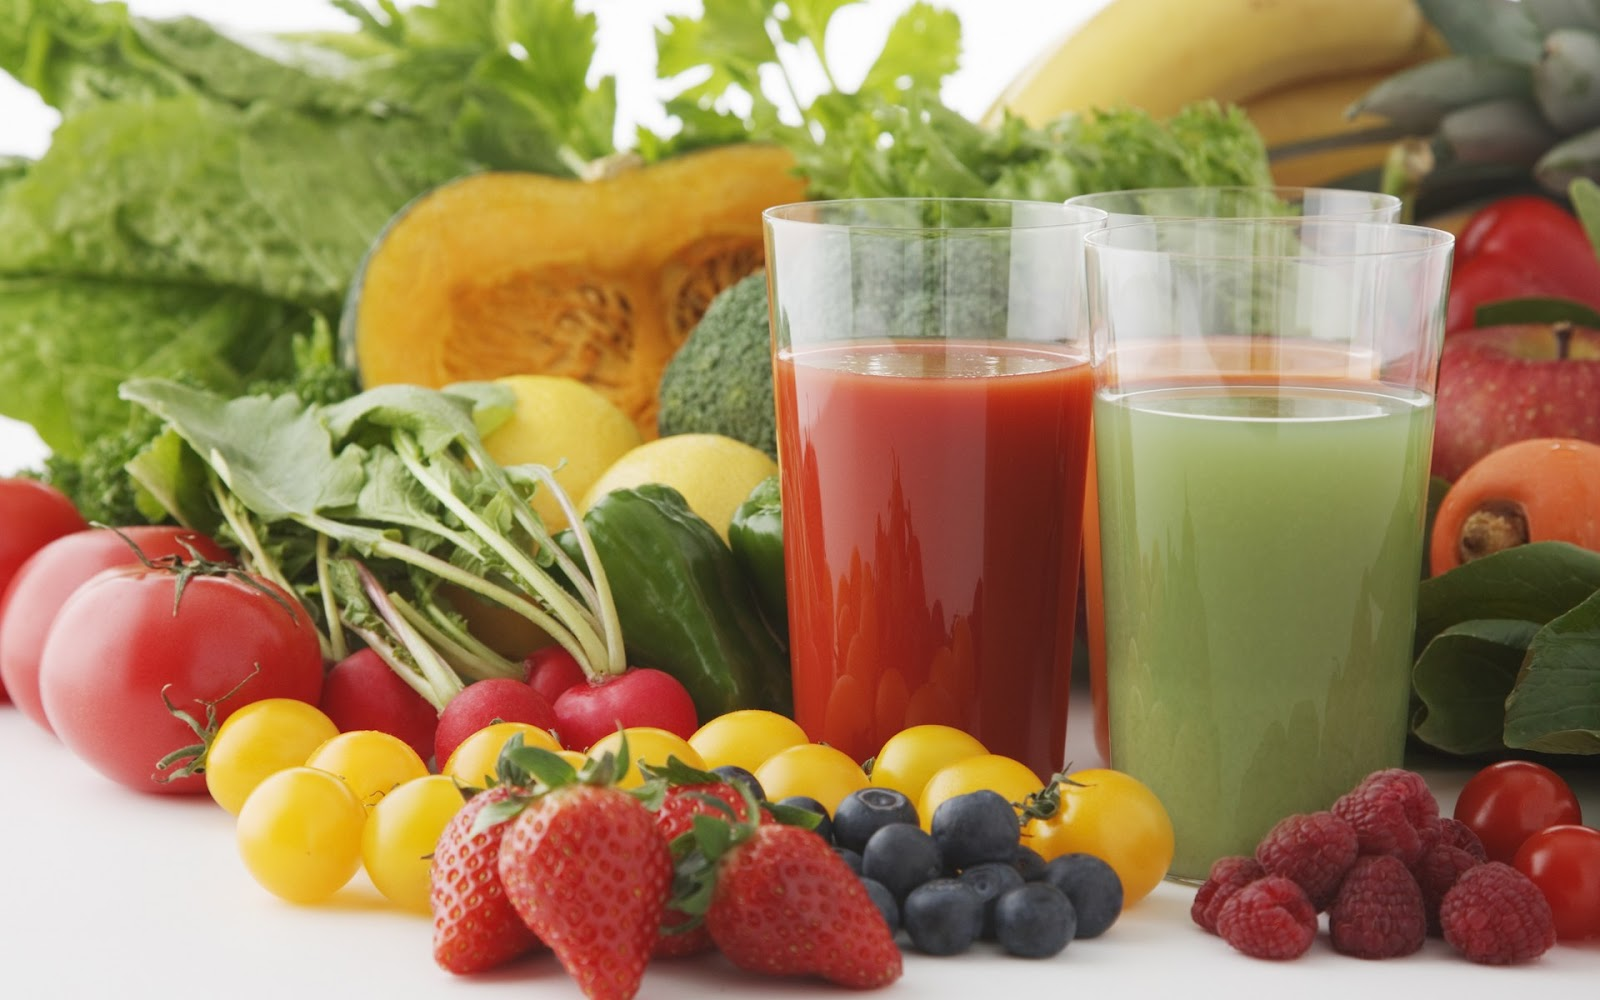 Chewing juice helps the digestive process.